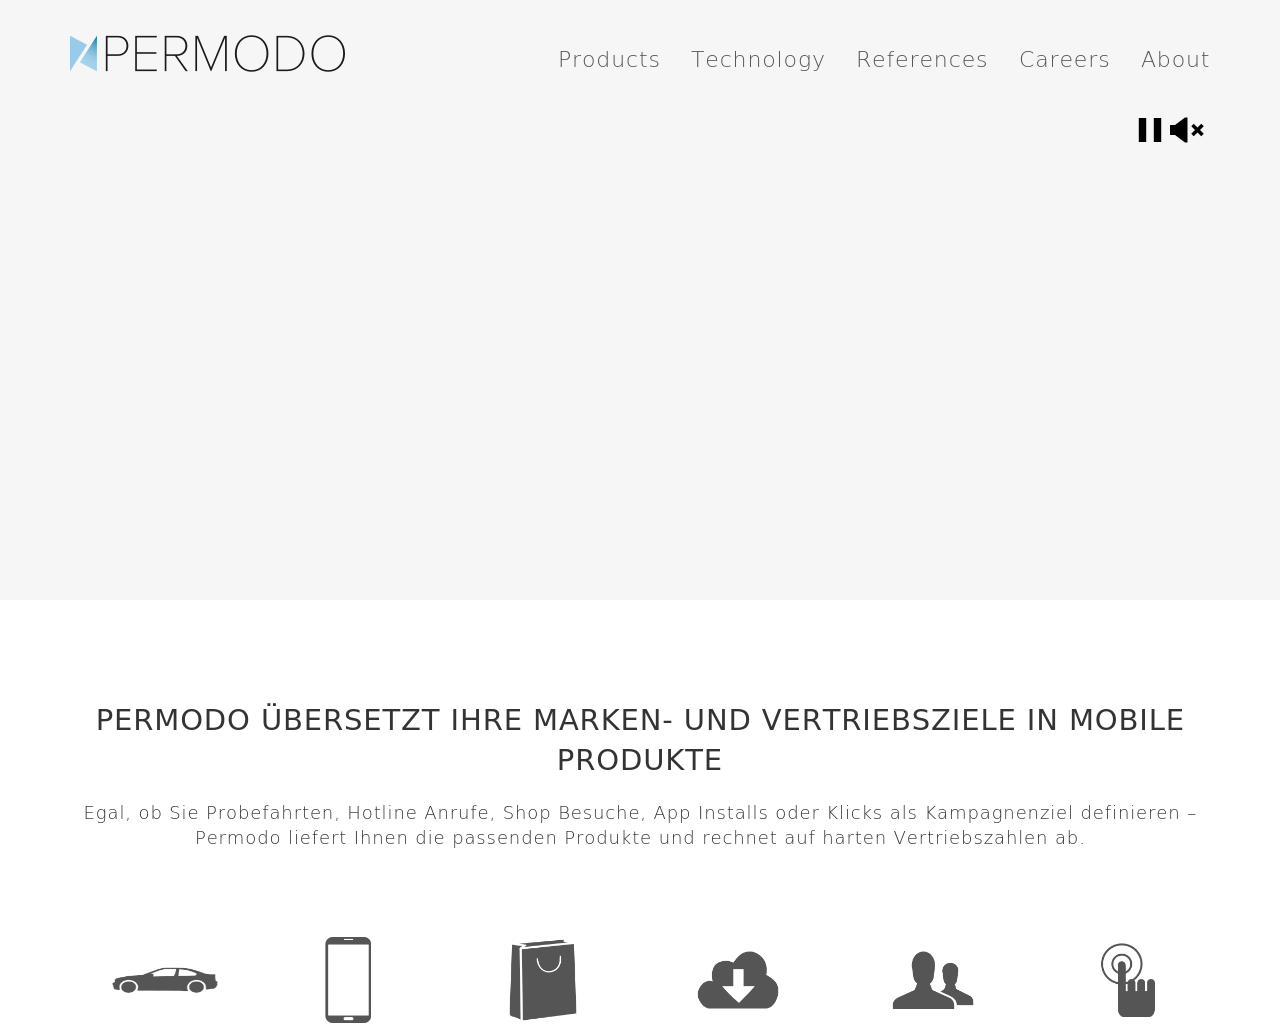 Permodo-Advertising-Reviews-Pricing